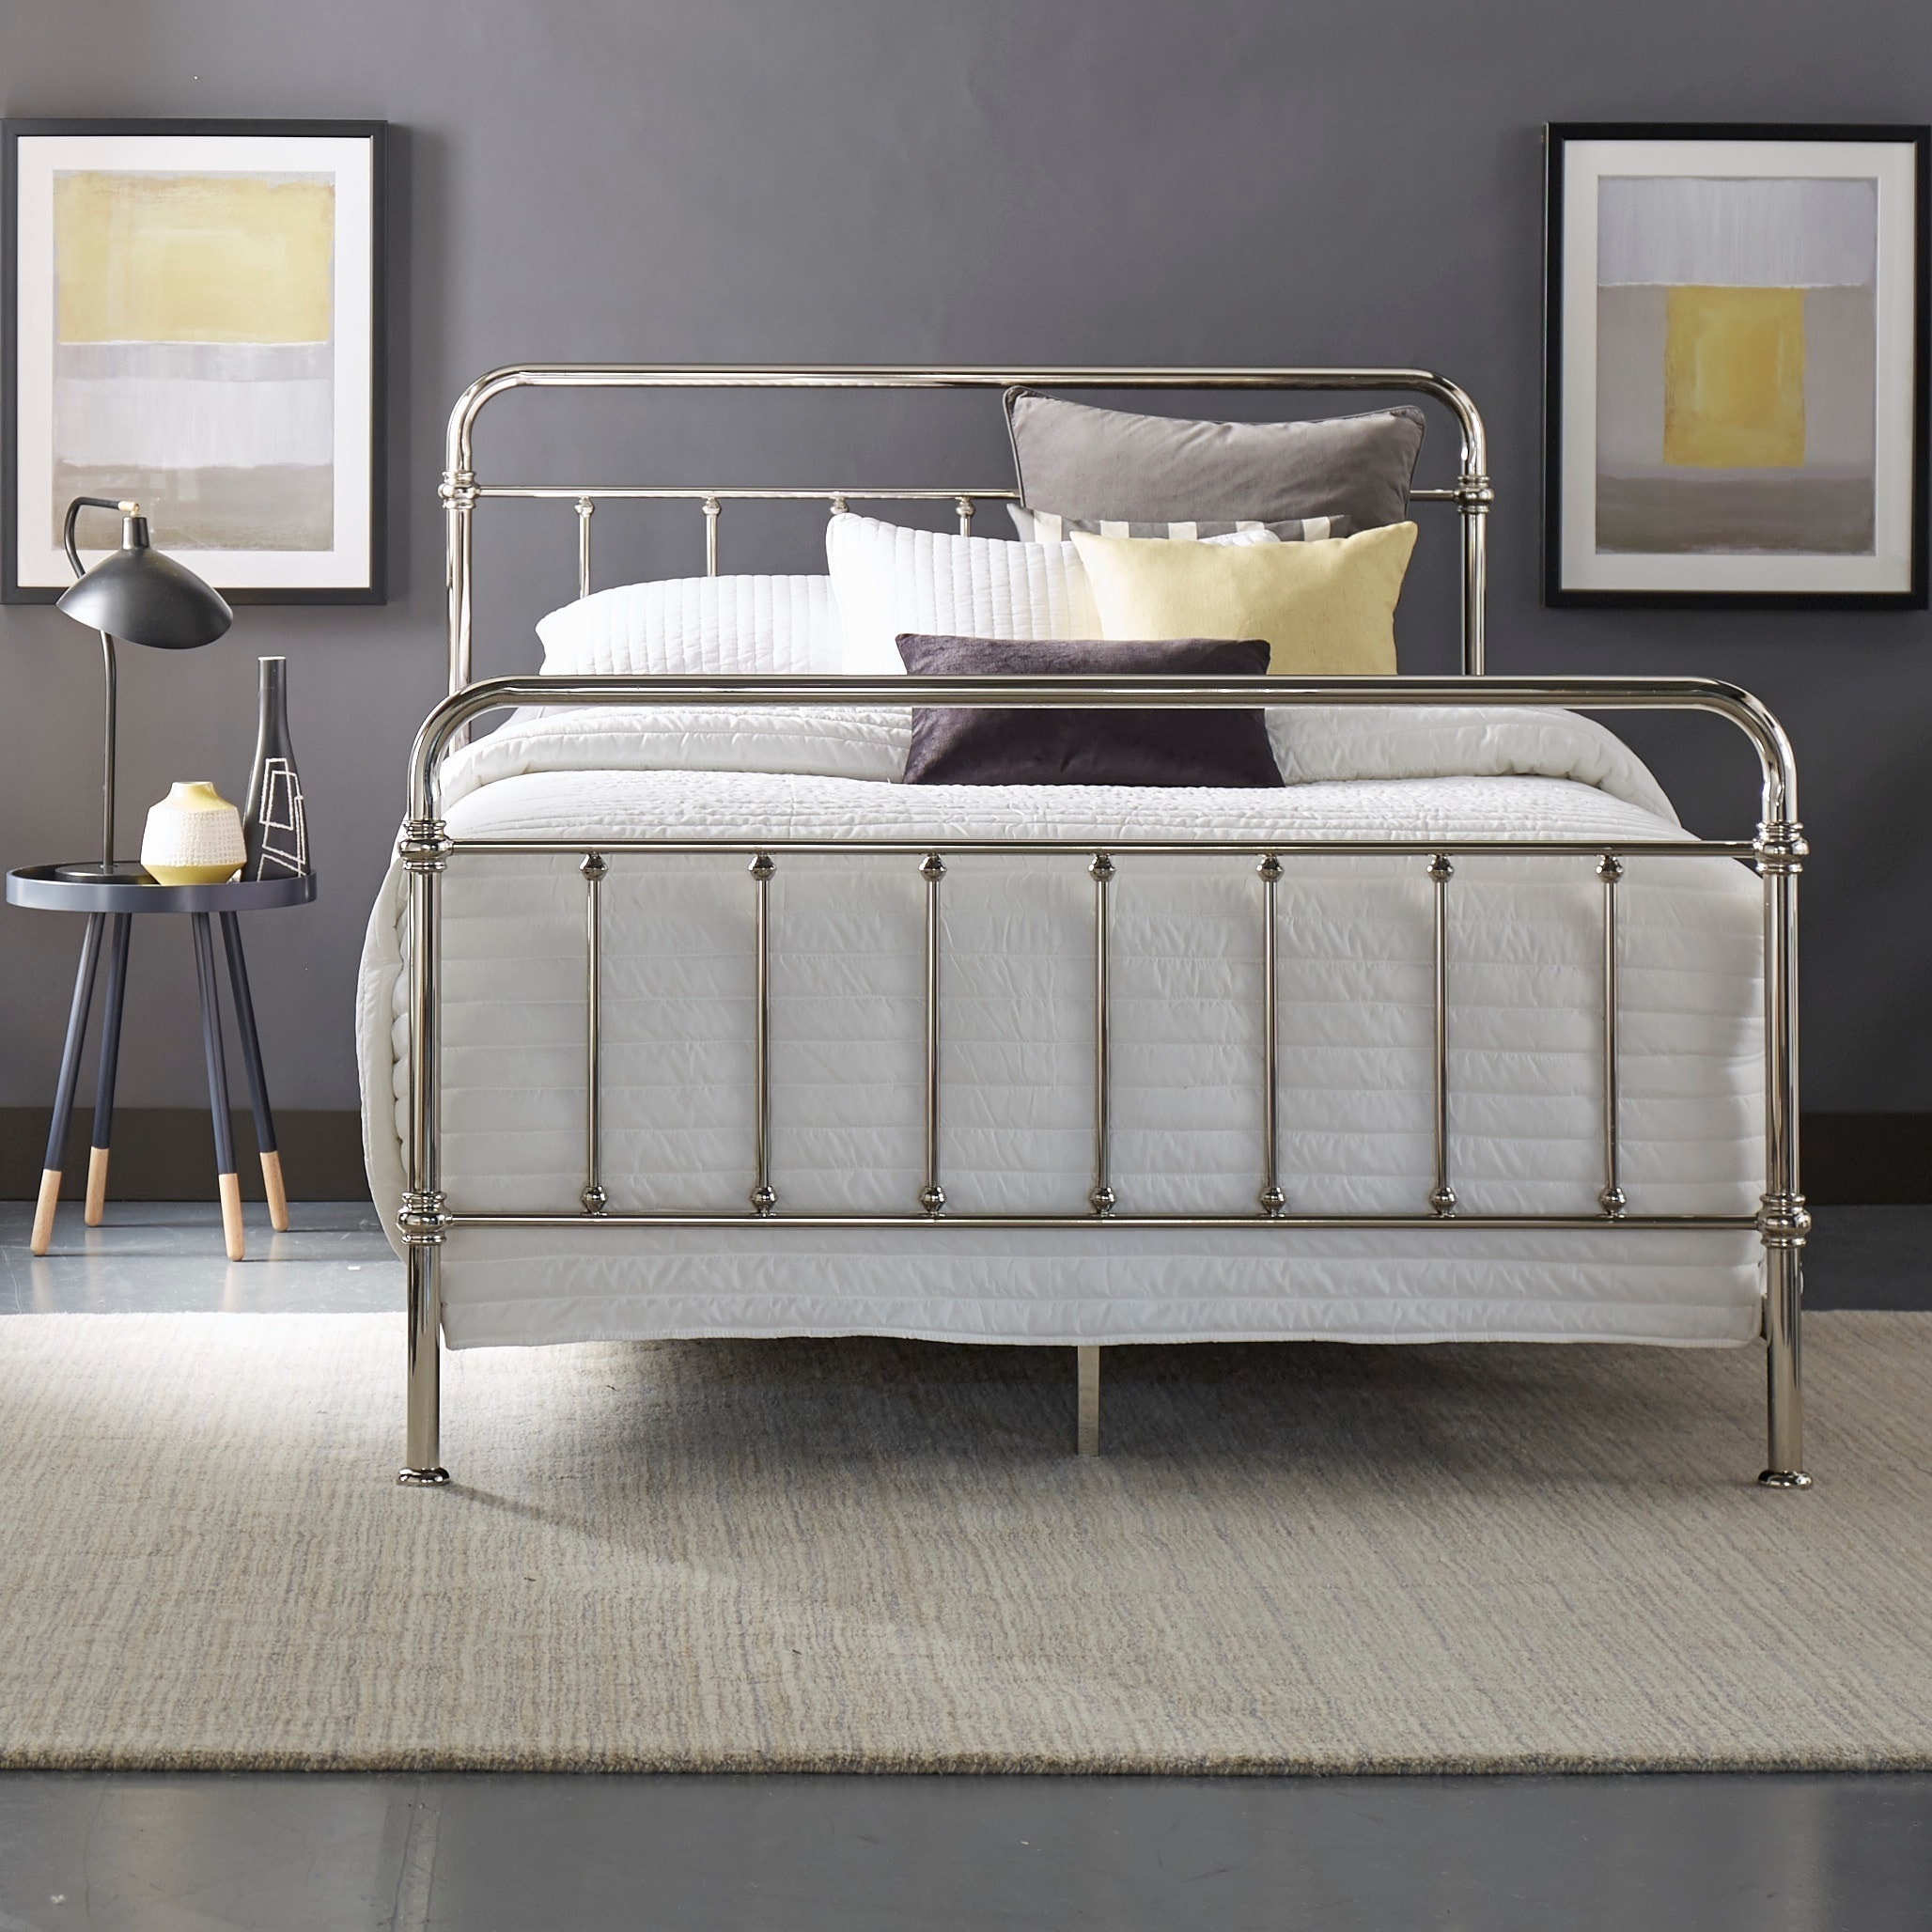 Giselle Graceful Lines Victorian Chrome Metal Bed by iNSPIRE Q Bold - Free  Shipping Today - Overstock.com - 20695151